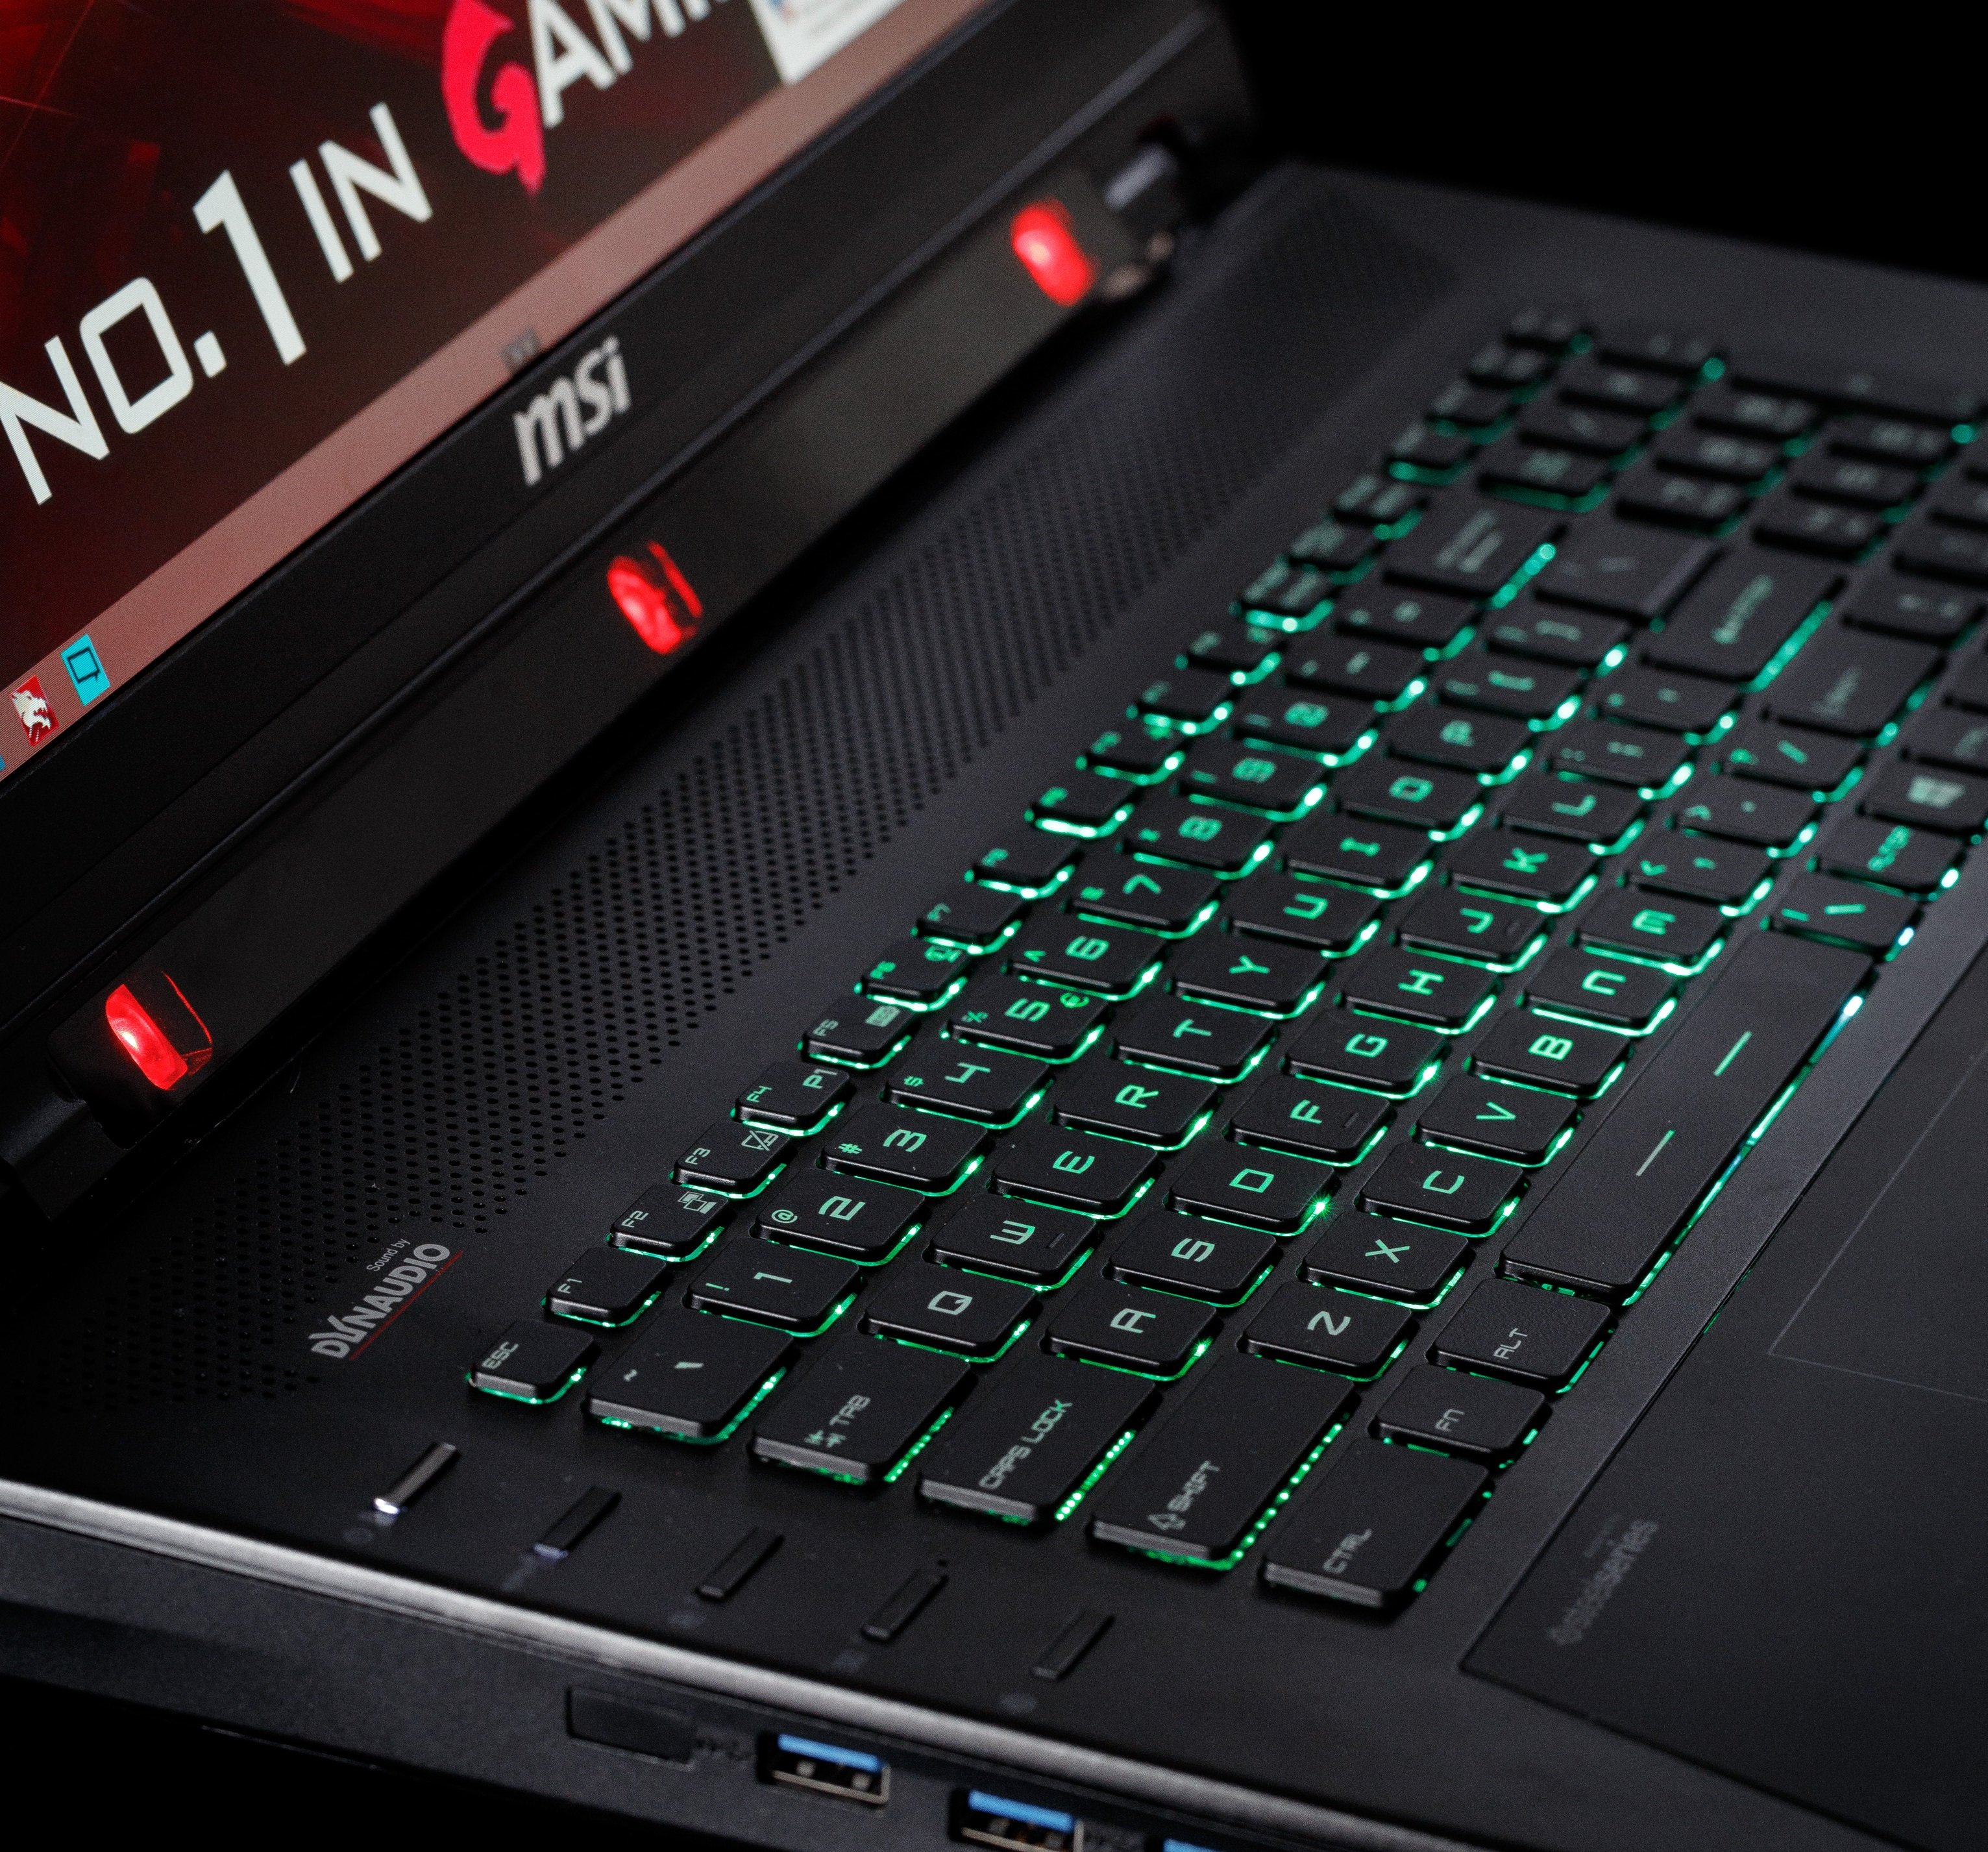 MSI & Tobii join forces to create eye-tracking gaming laptop